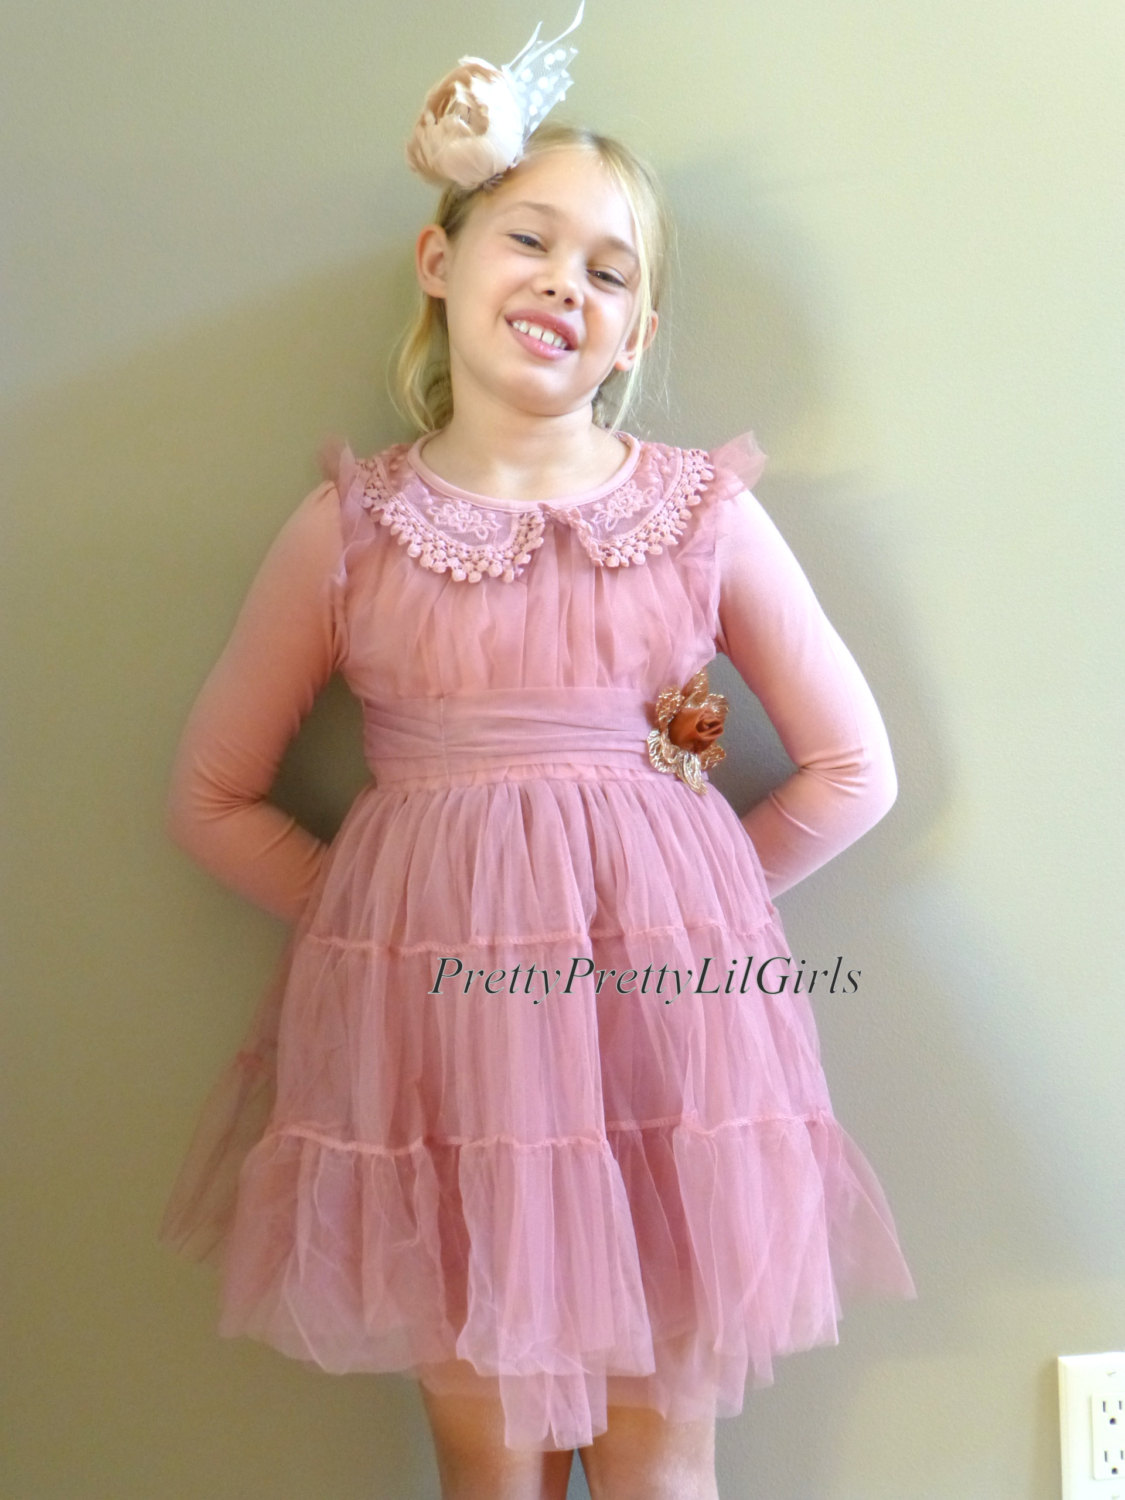 Toddler Girl Dress Girls Dress Lace Girls Dress Pink Girls Dress